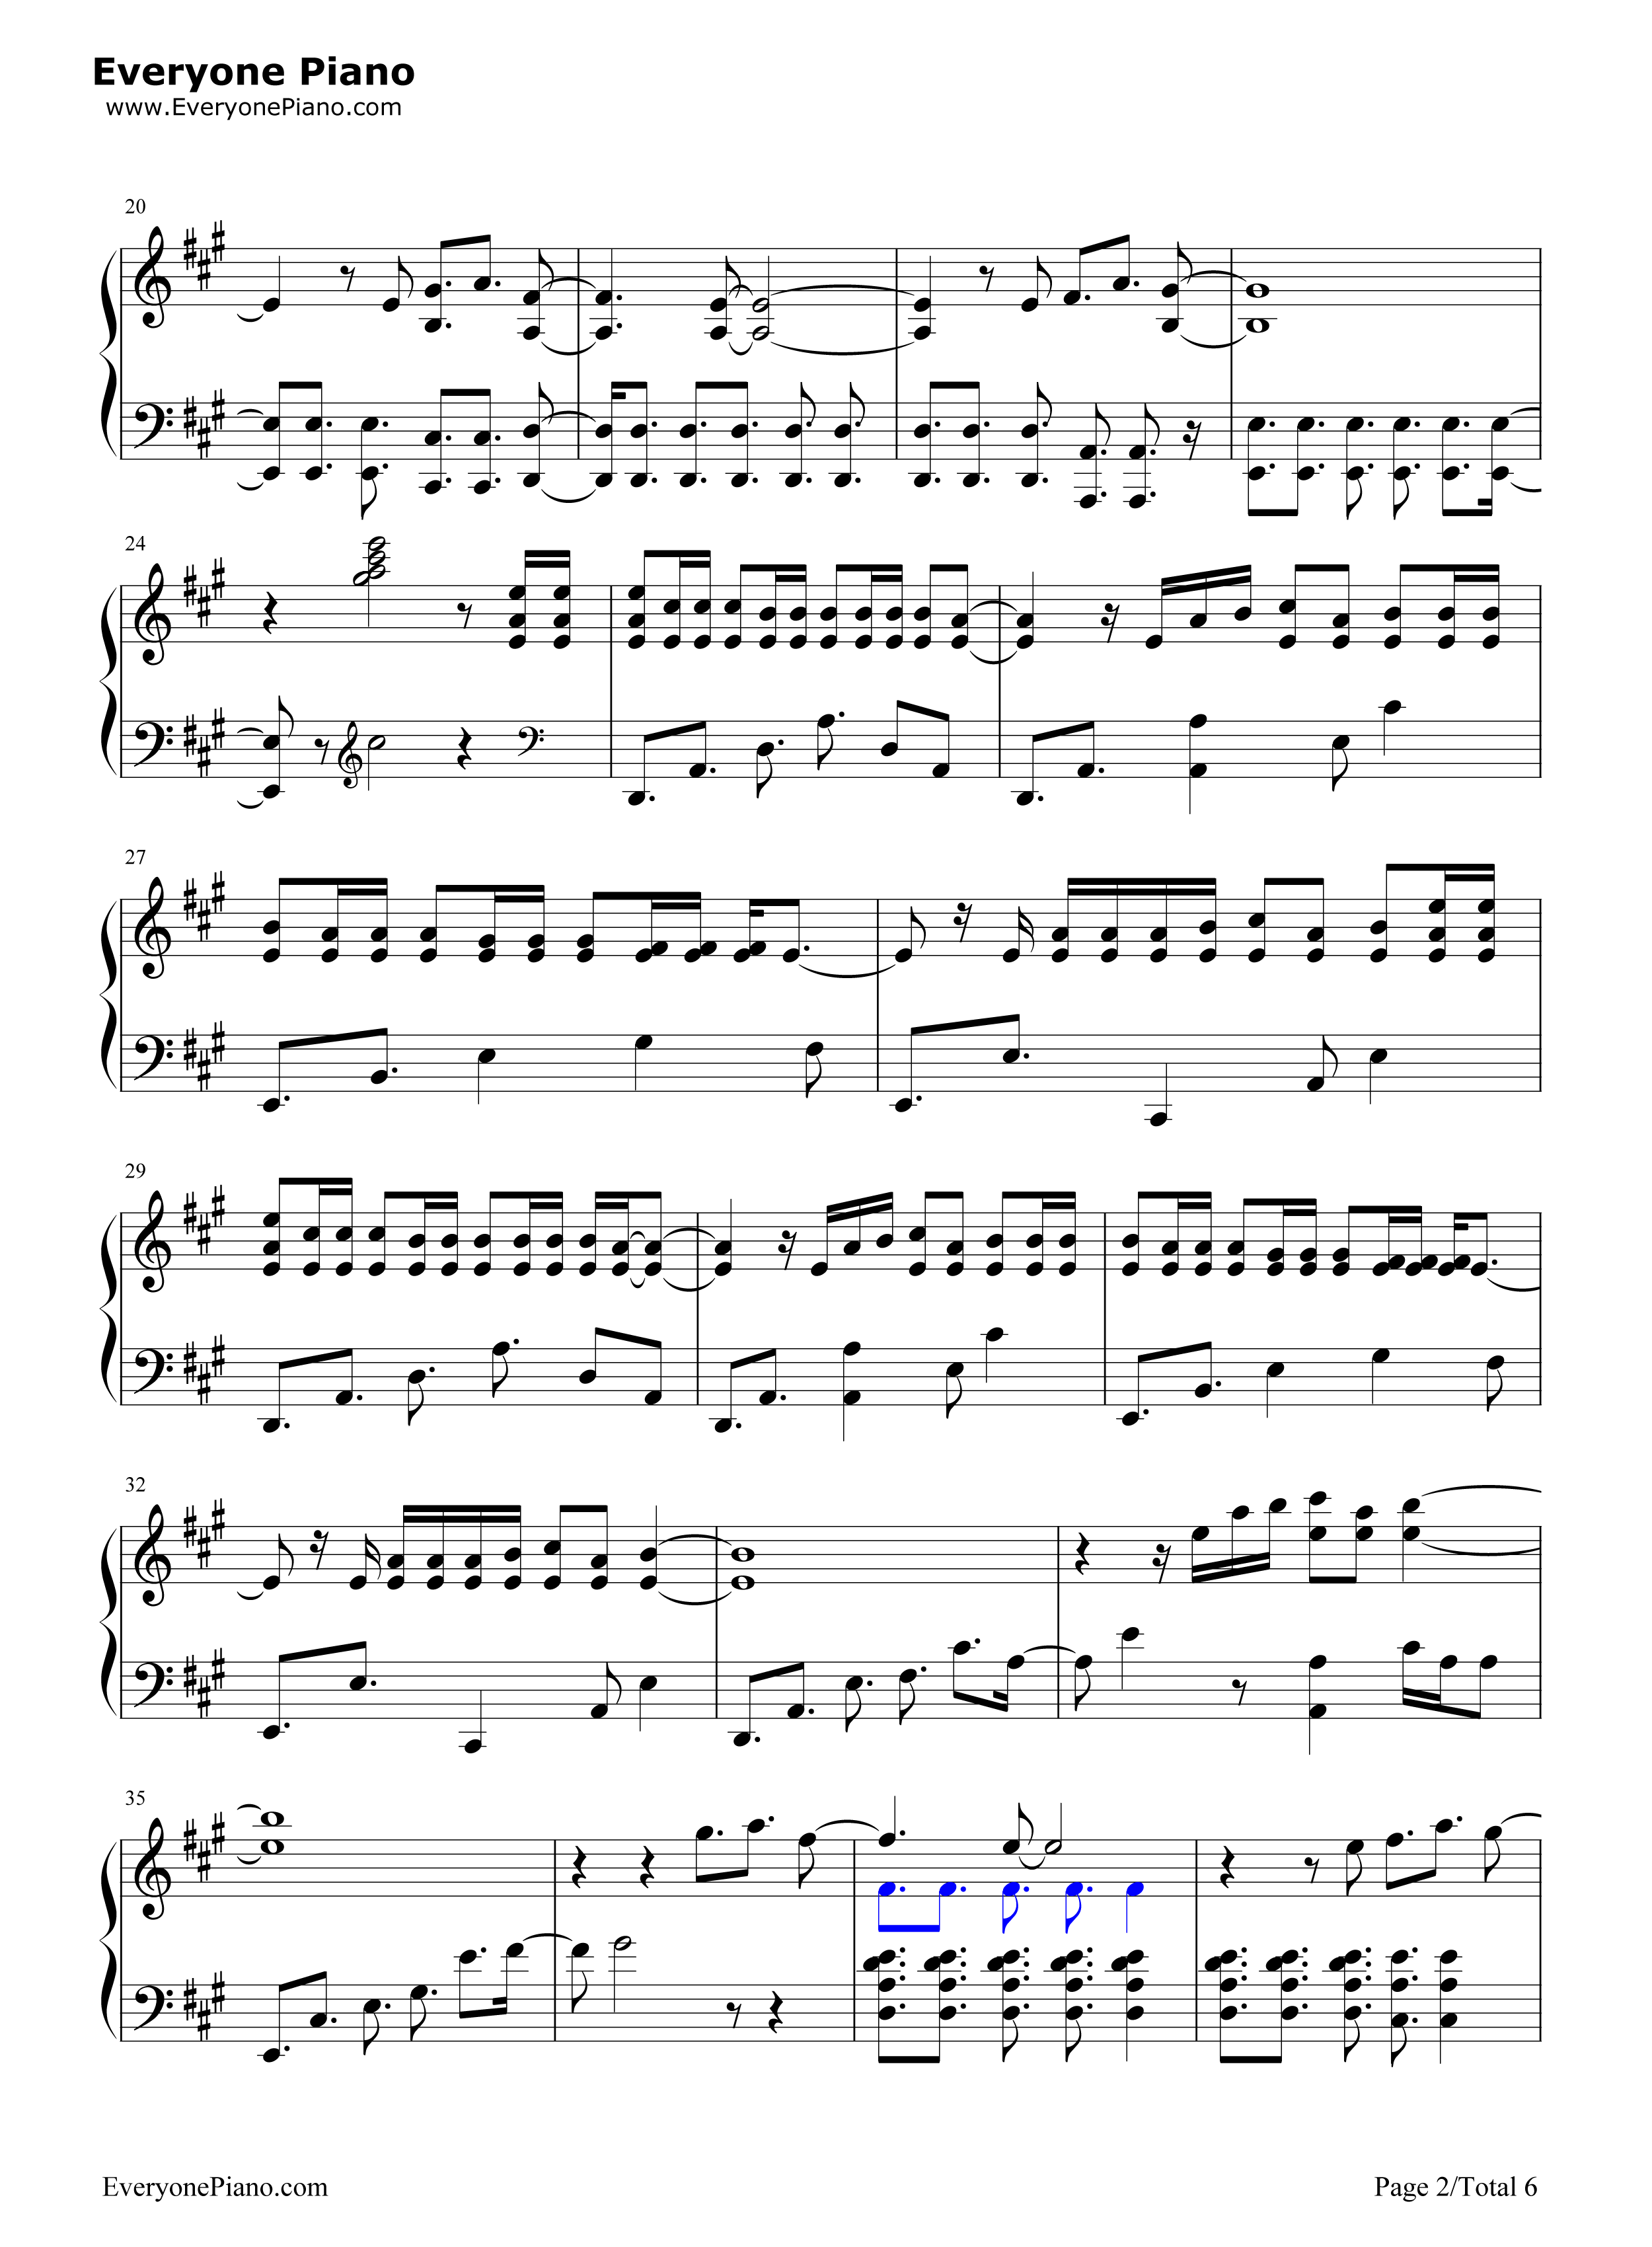 fly on coldplay sheet music pdf